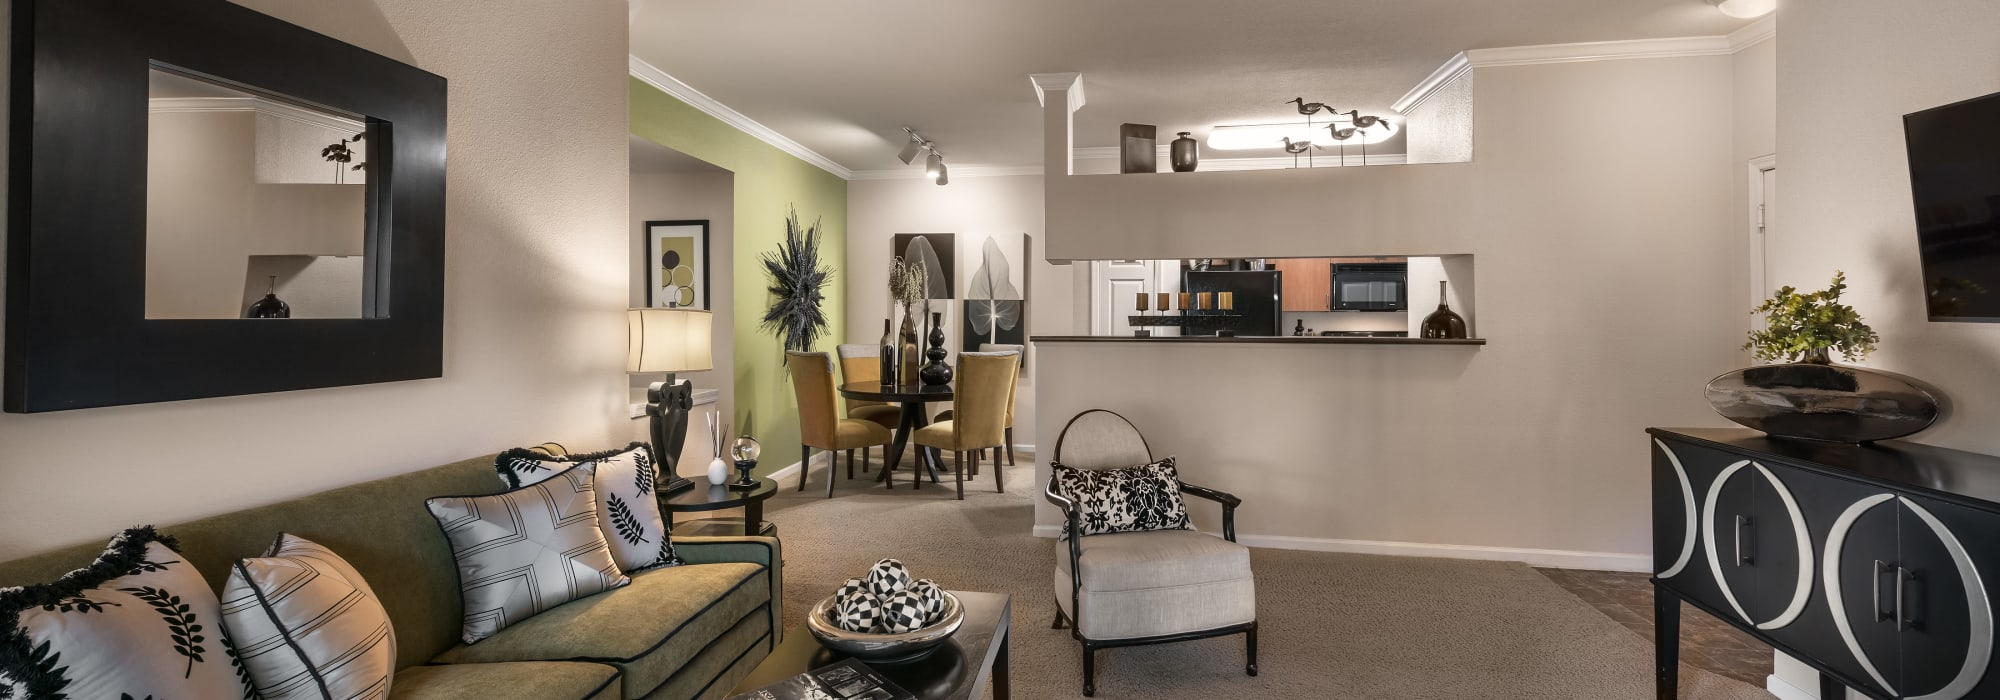 Apartments with living rooms with open floor plans at Azul at Spectrum in Gilbert, Arizona